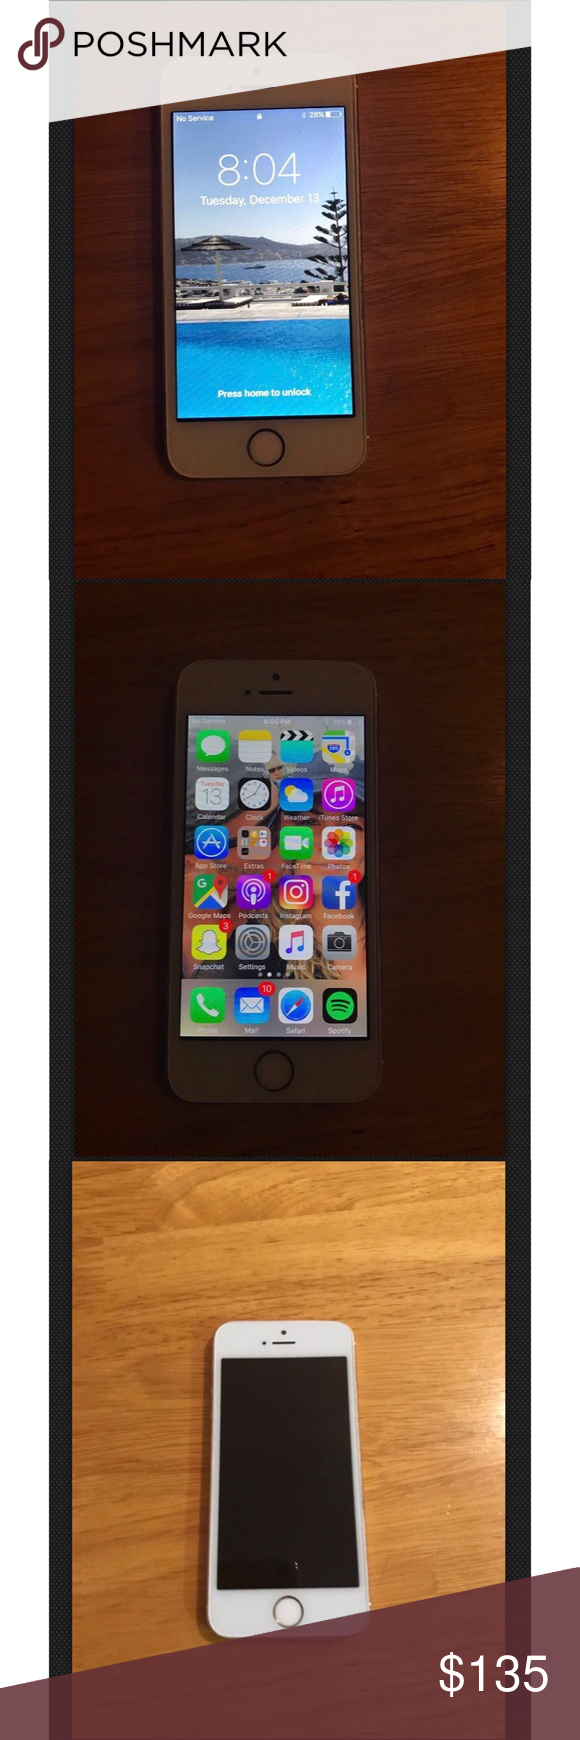 Iphone 5 back png apple iphone 5 16gb - Apple Iphone 5s 16gb Gold